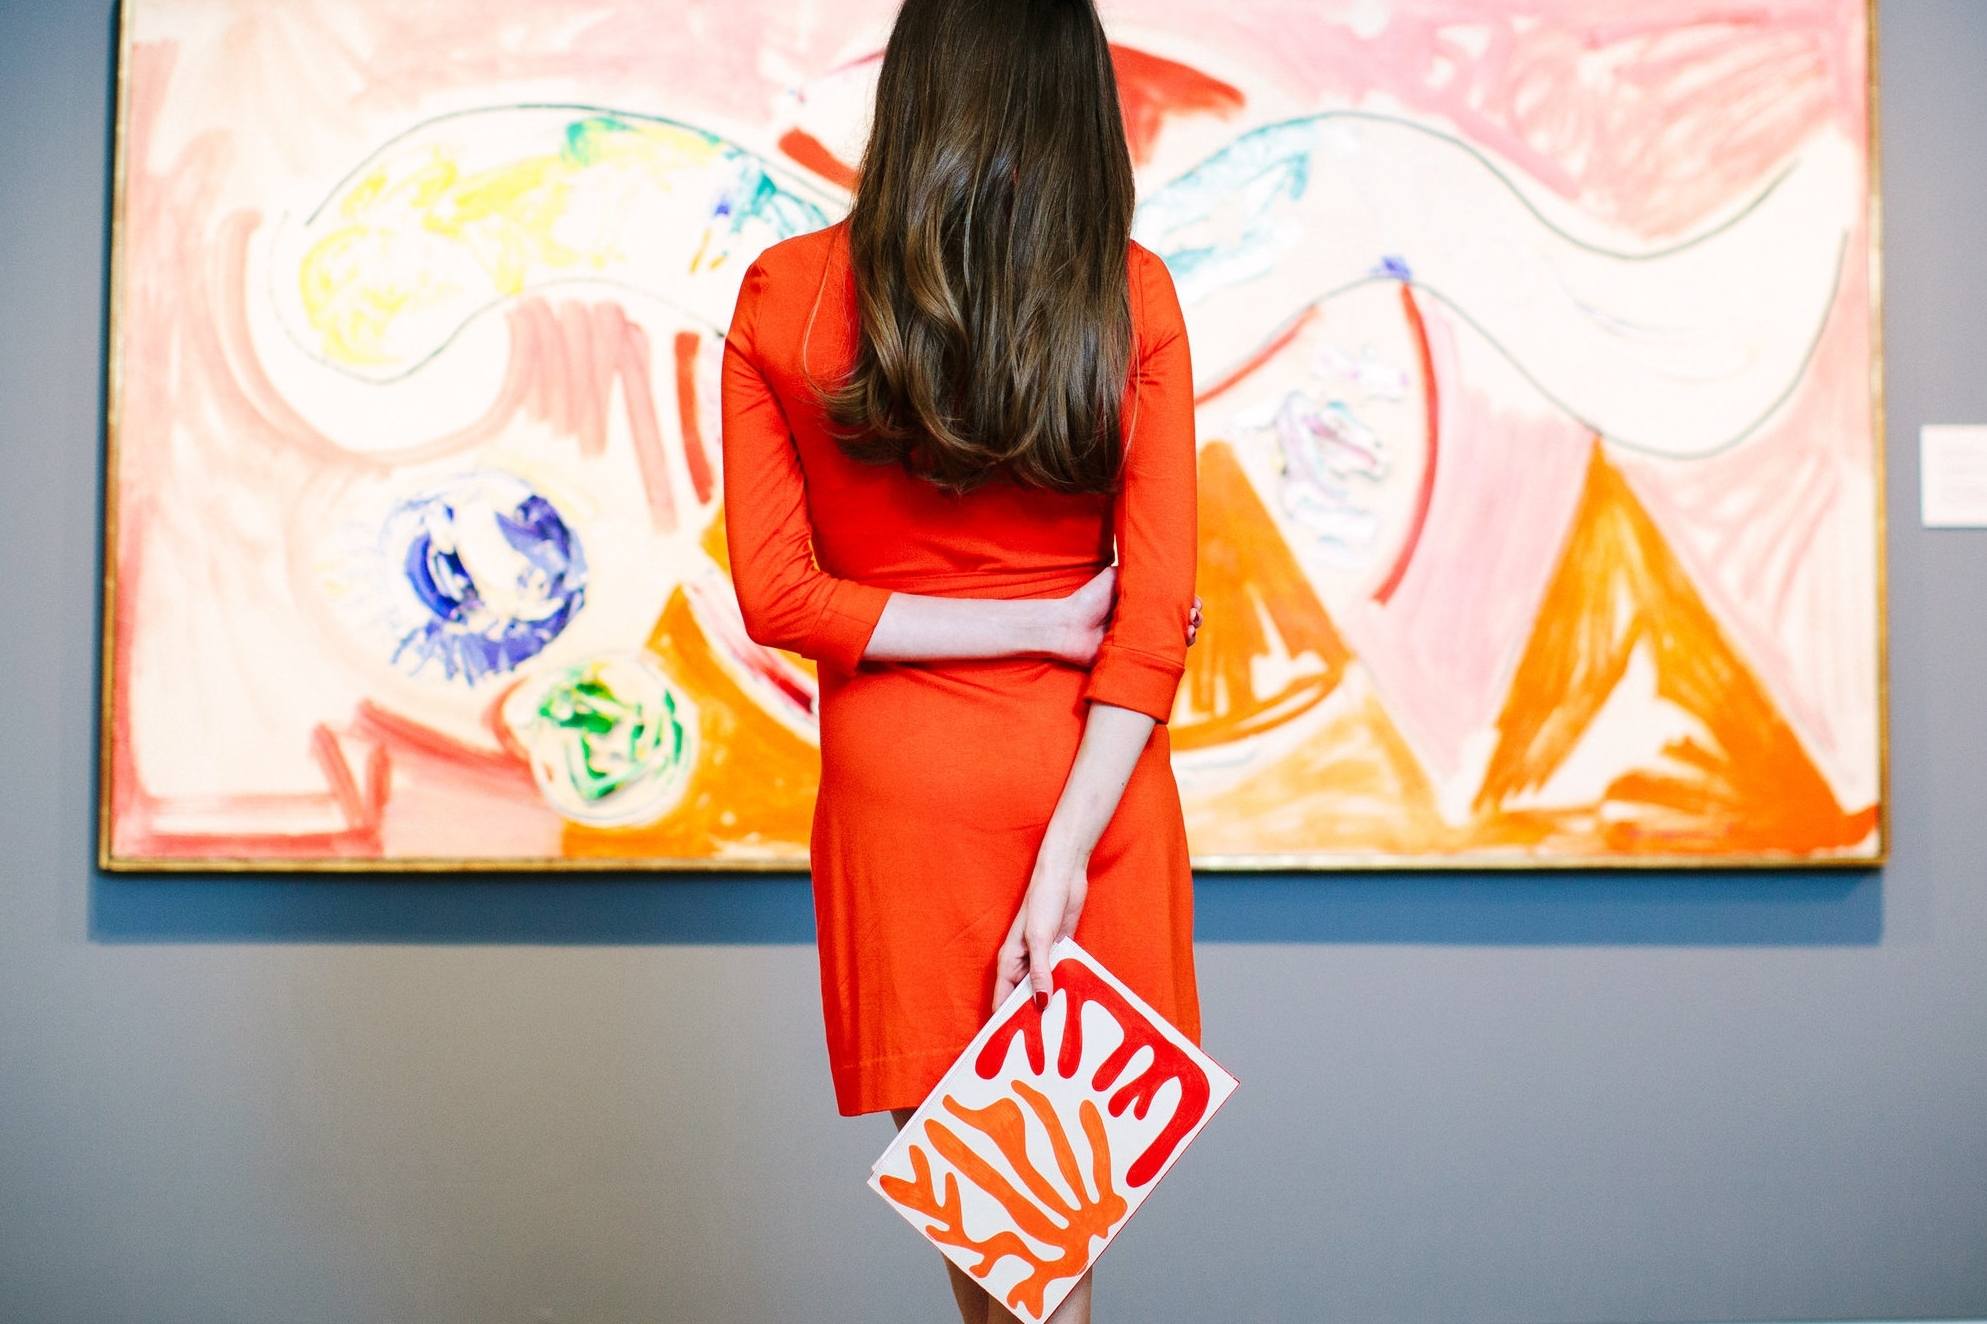 Hans Hofmann, Undulating Expanse , 1955, Oil on Canvas. Ackland Art Museum, The University of North Carolina at Chapel Hill. Ackland Fund, 88.27  The Cherry Red Clutch